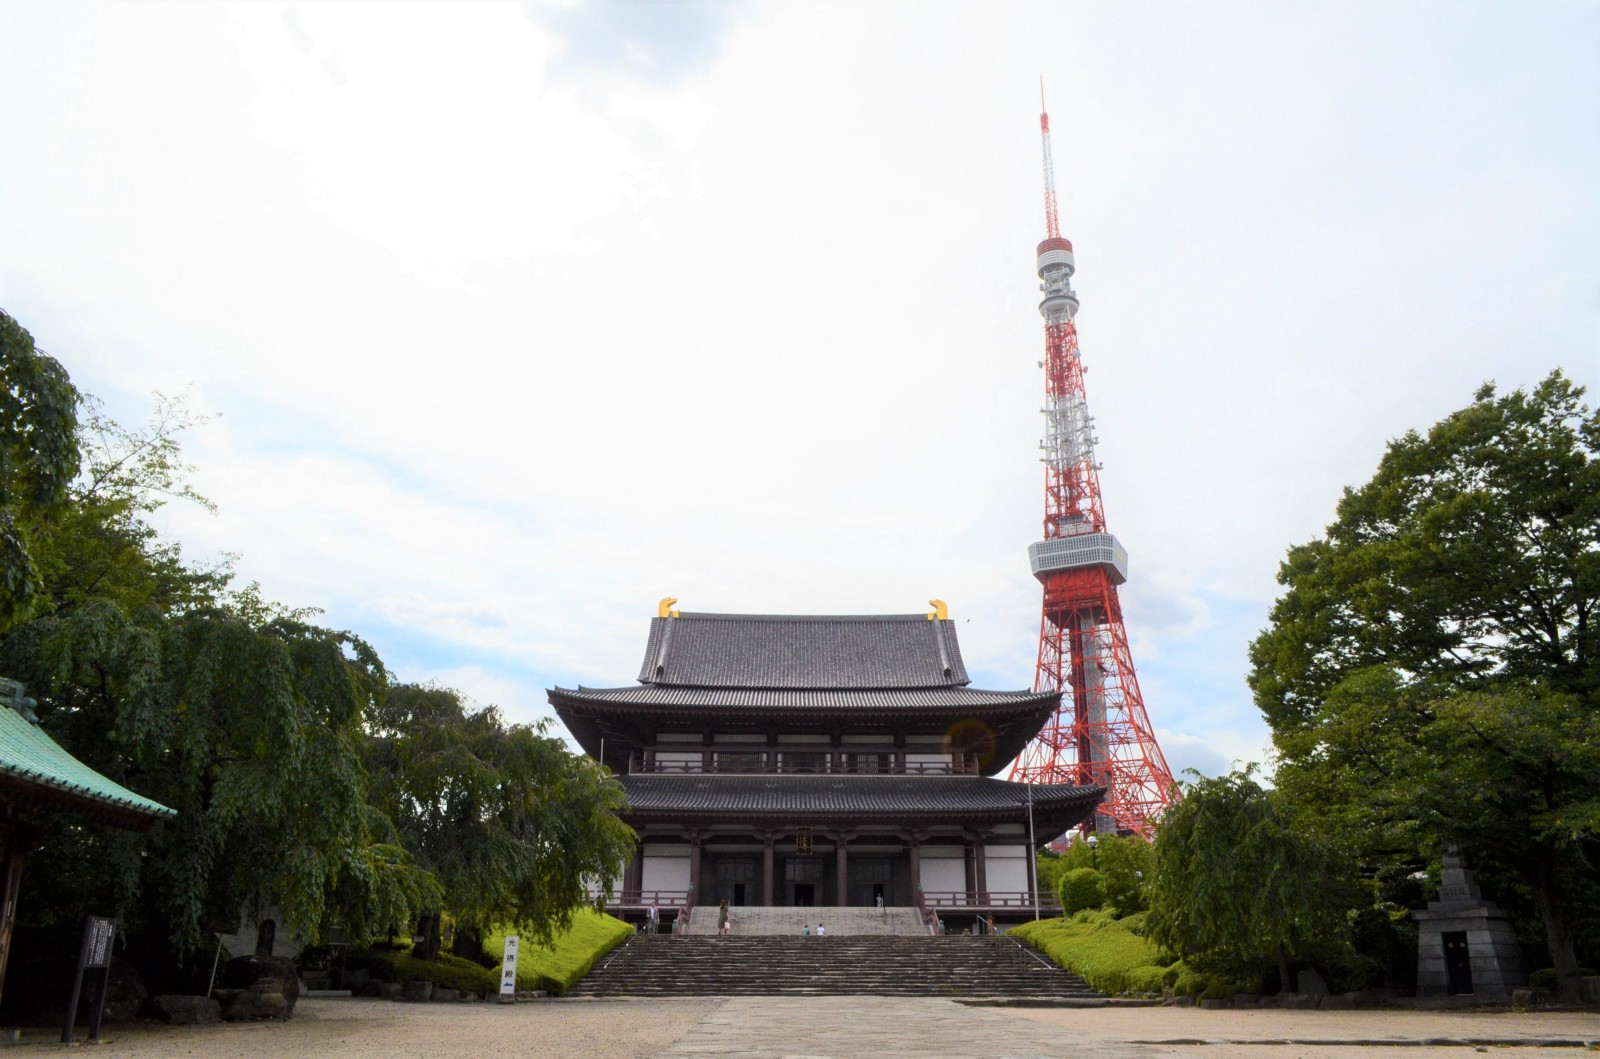 The front view of Zojoji Temple and Tokyo Tower